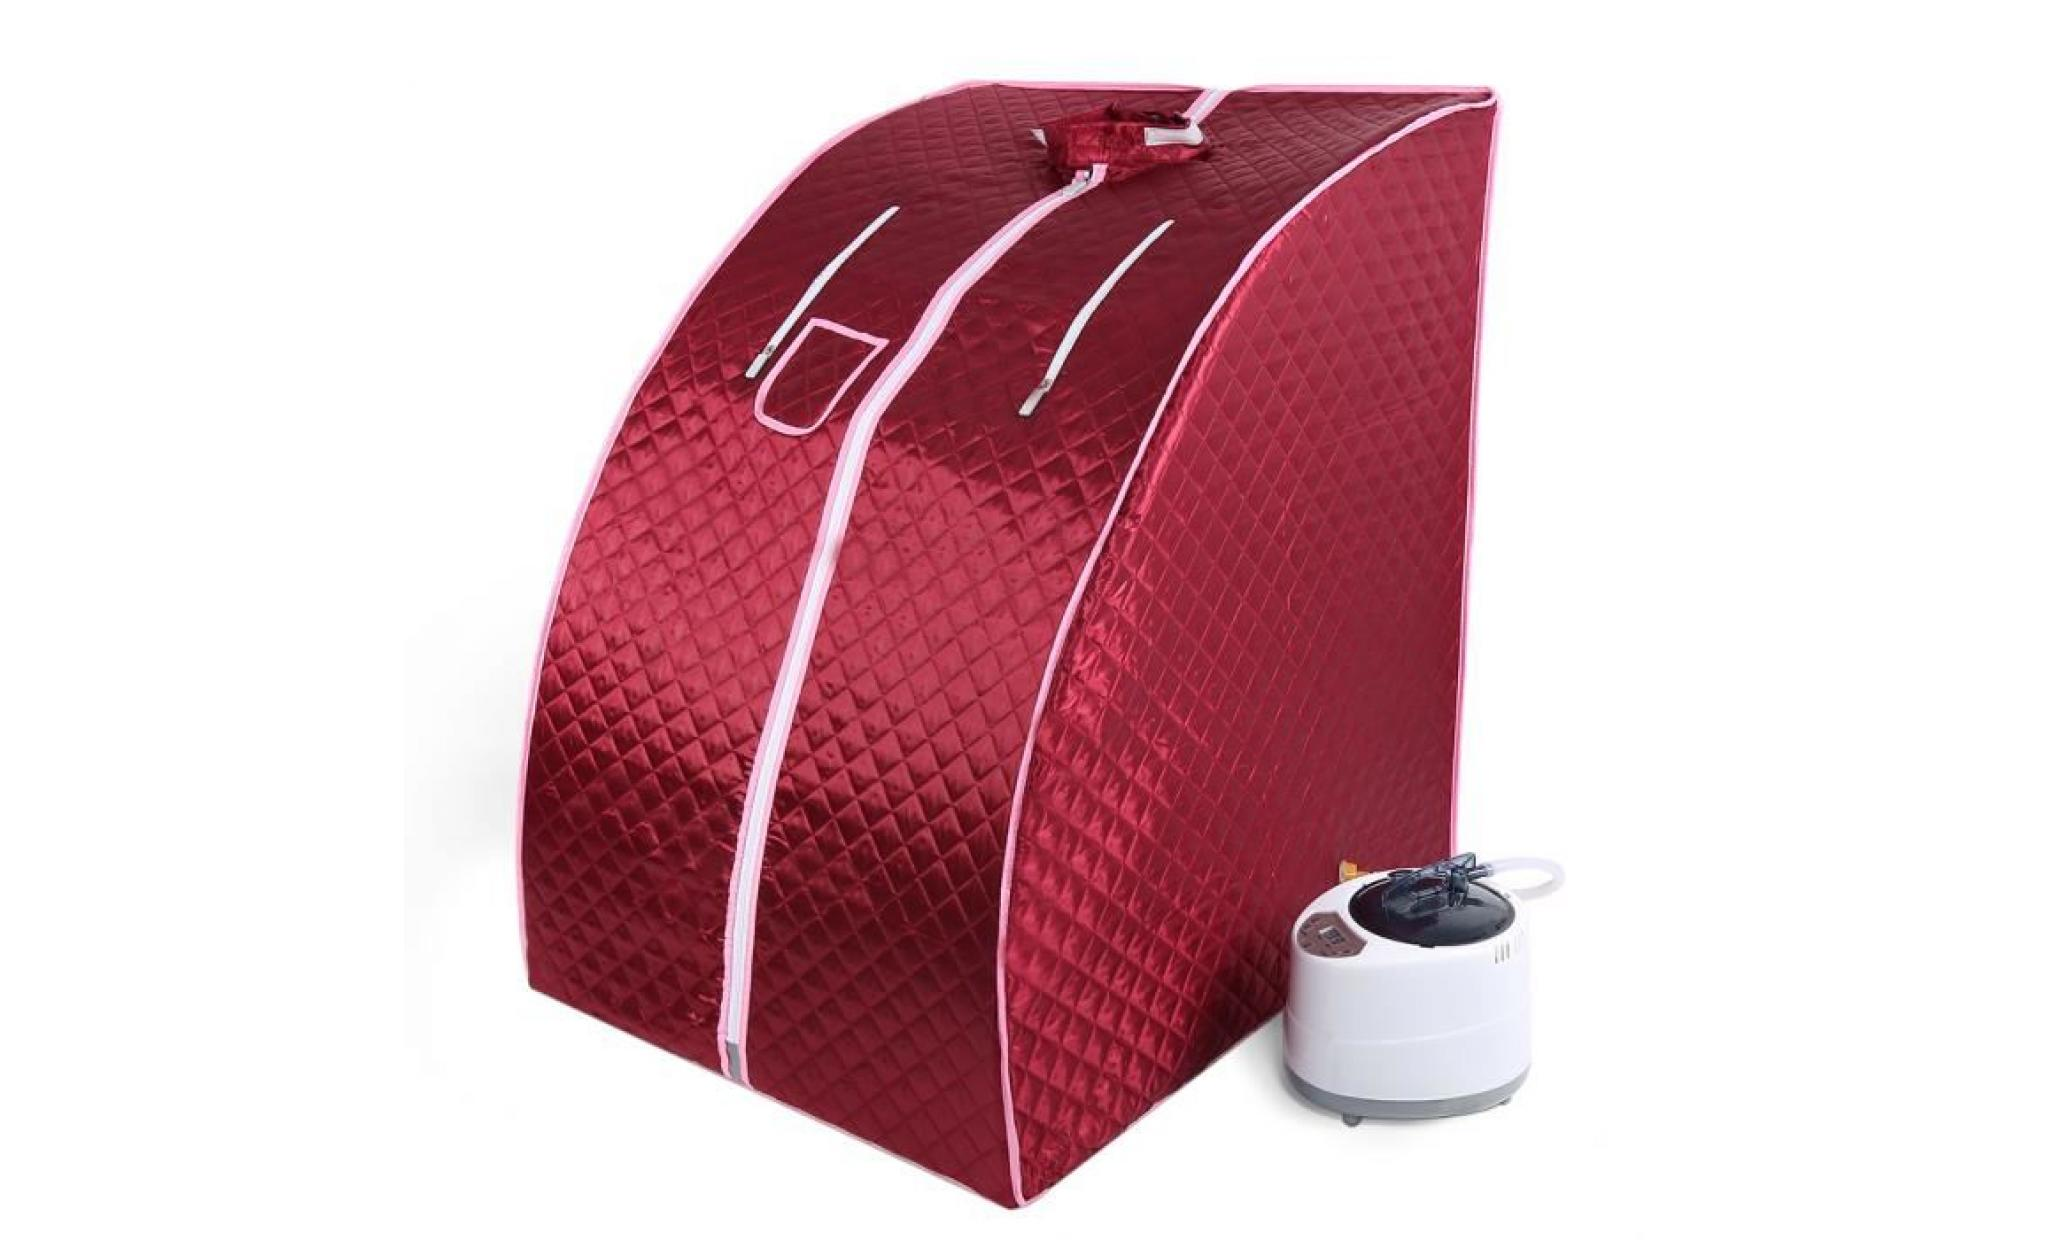 rouge sauna infrarouge pliable, cabine de sauna portable maison  mobile